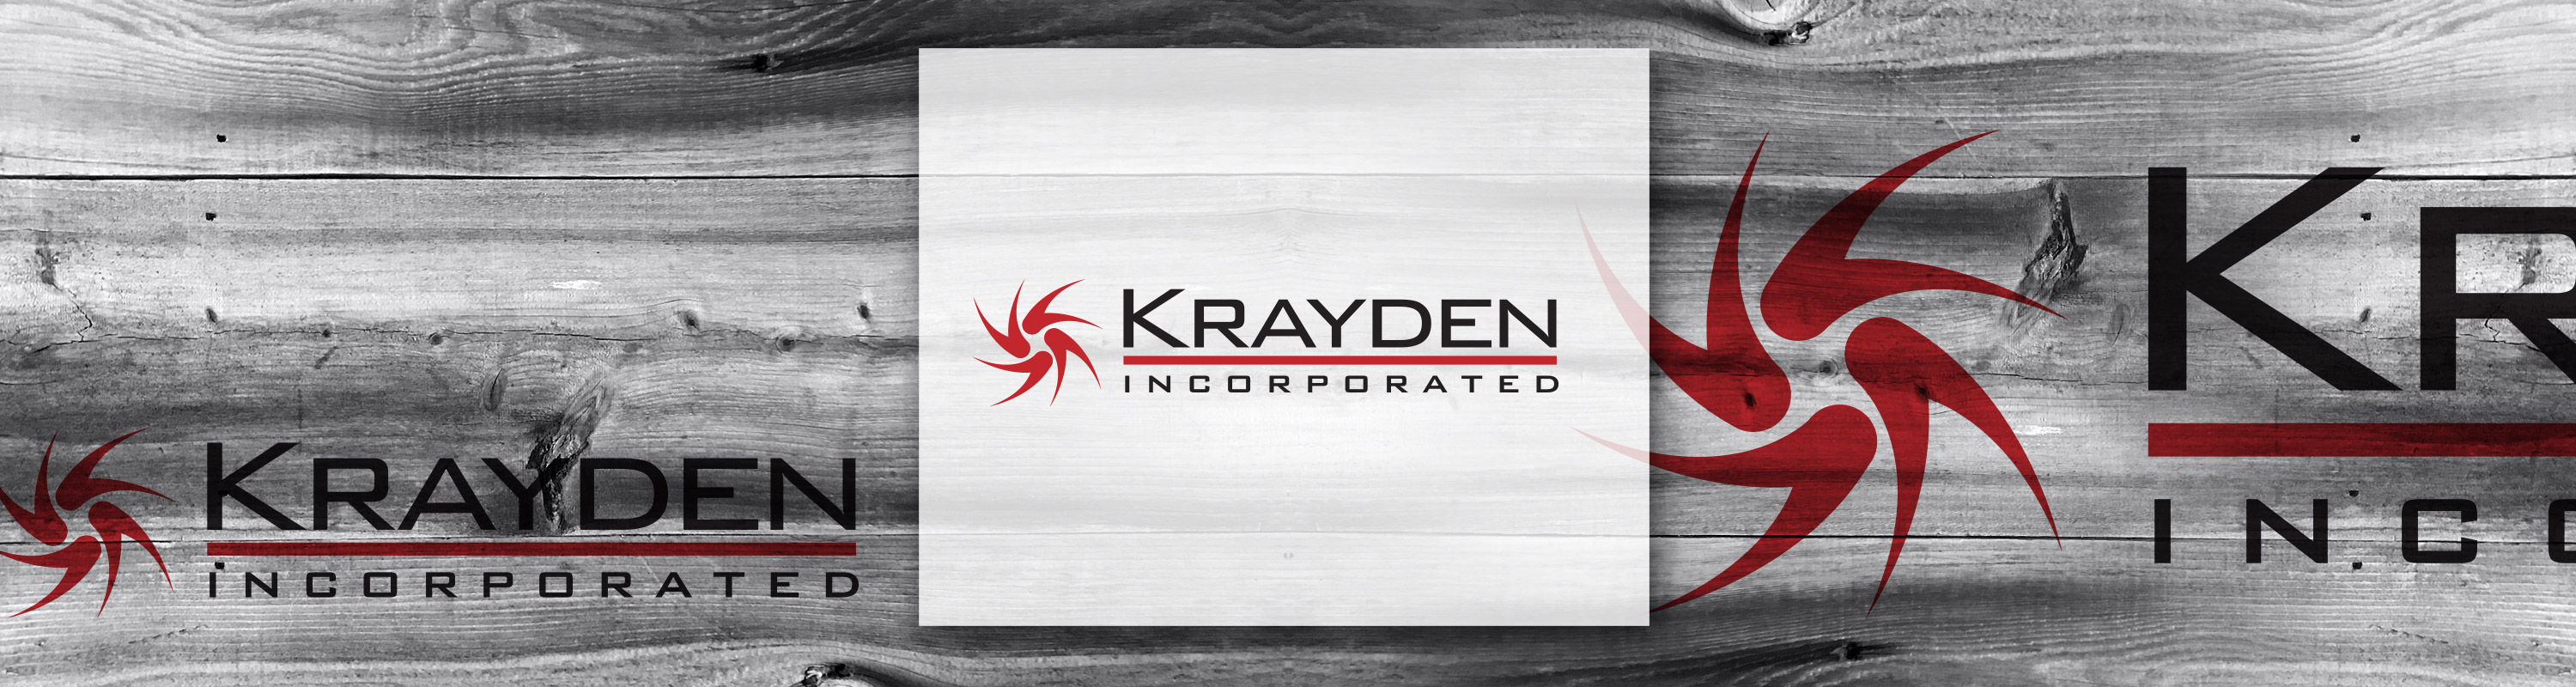 Fort Collins Logo Design: Krayden